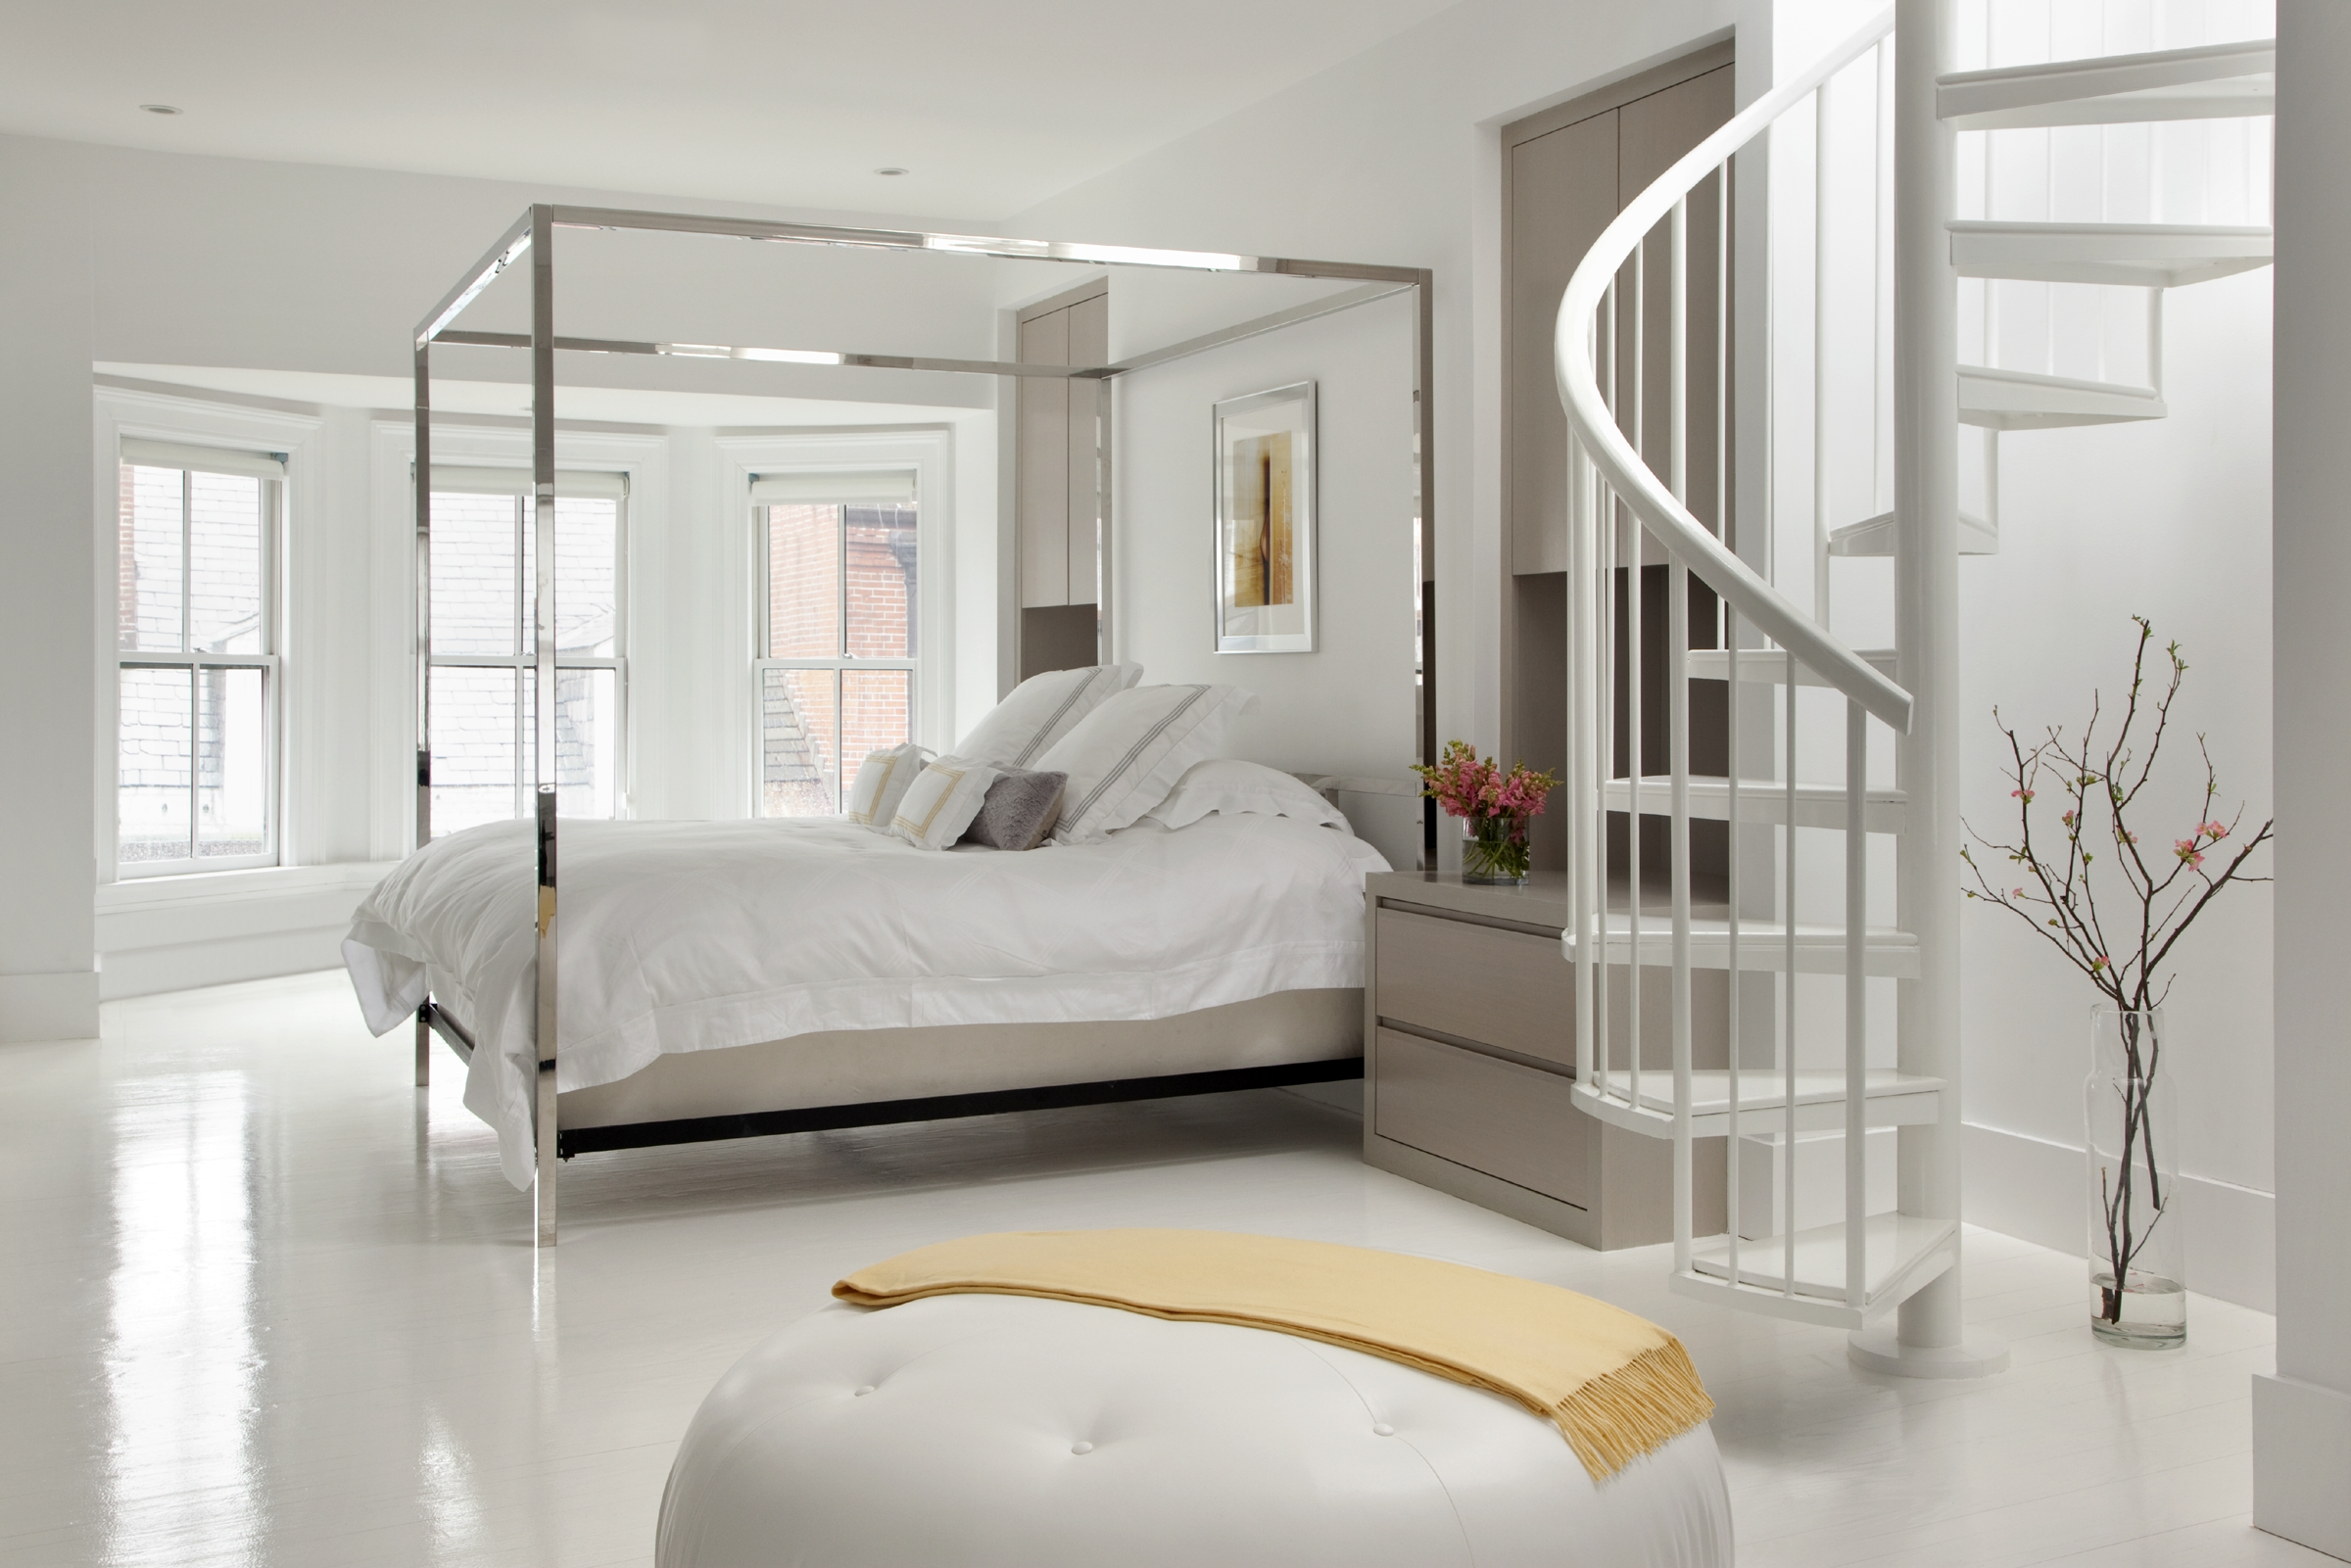 Ruhl Walker Perry master bedroom 1.jpg